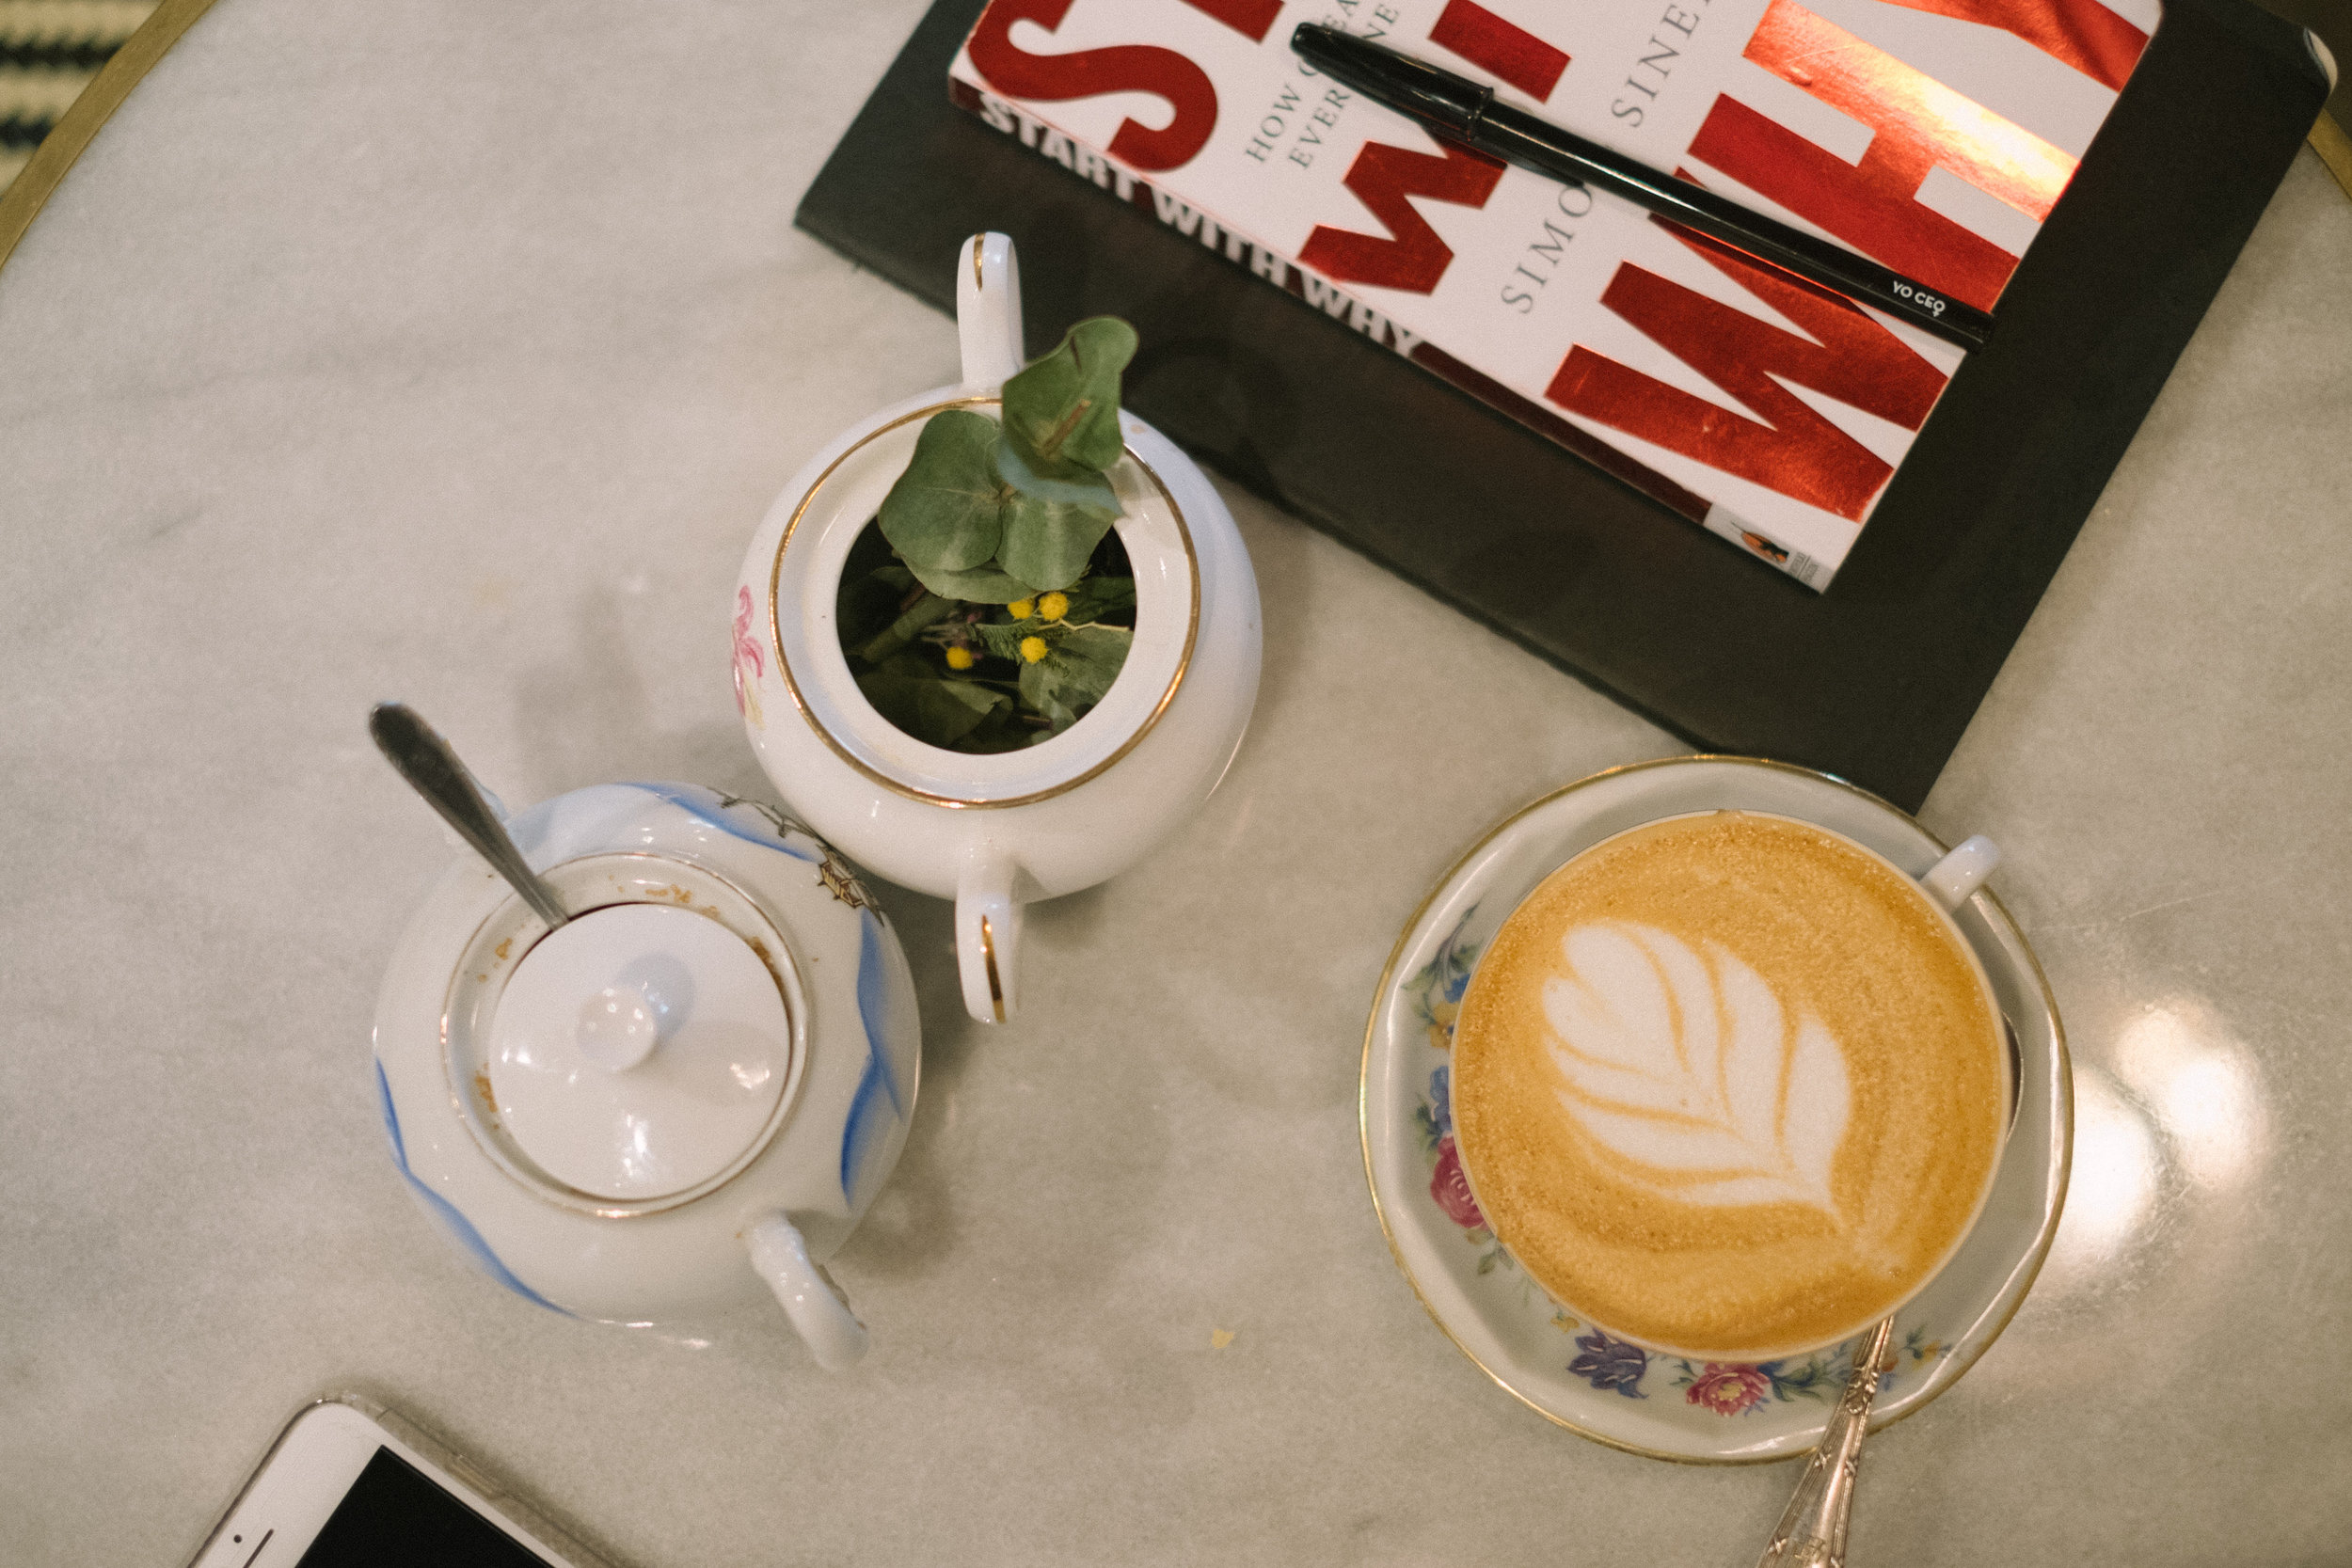 Coffee and book on a table